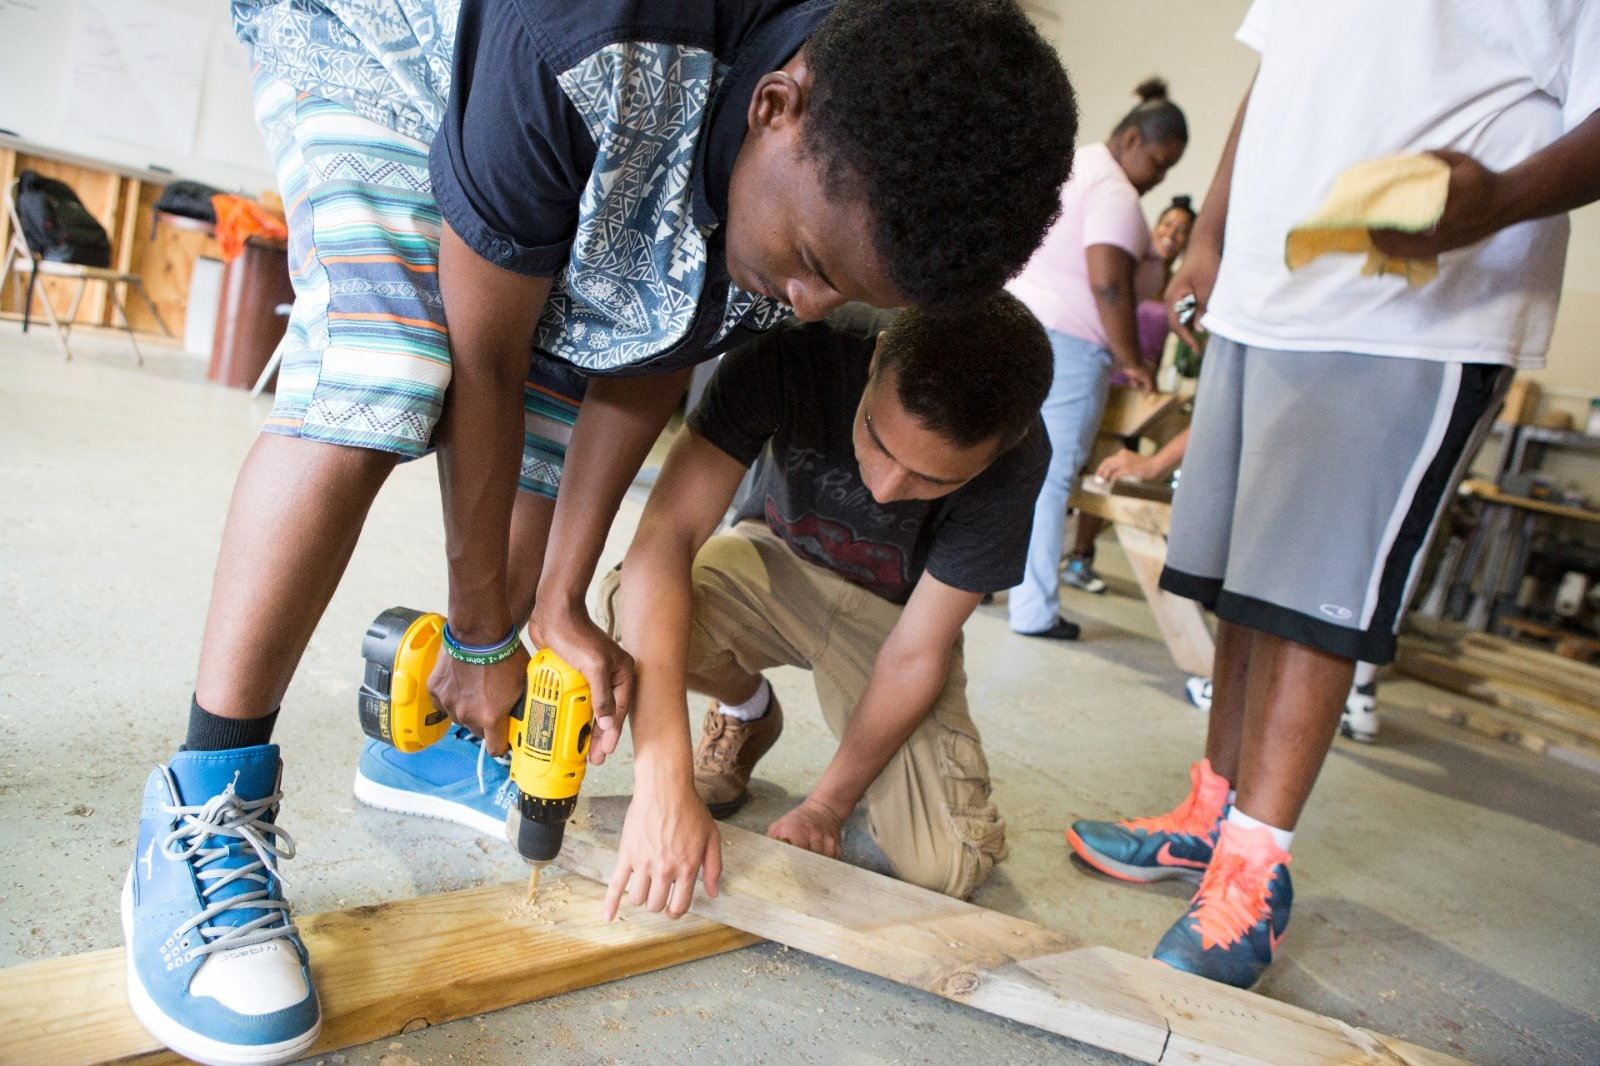 Young adults learn woodworking skills.